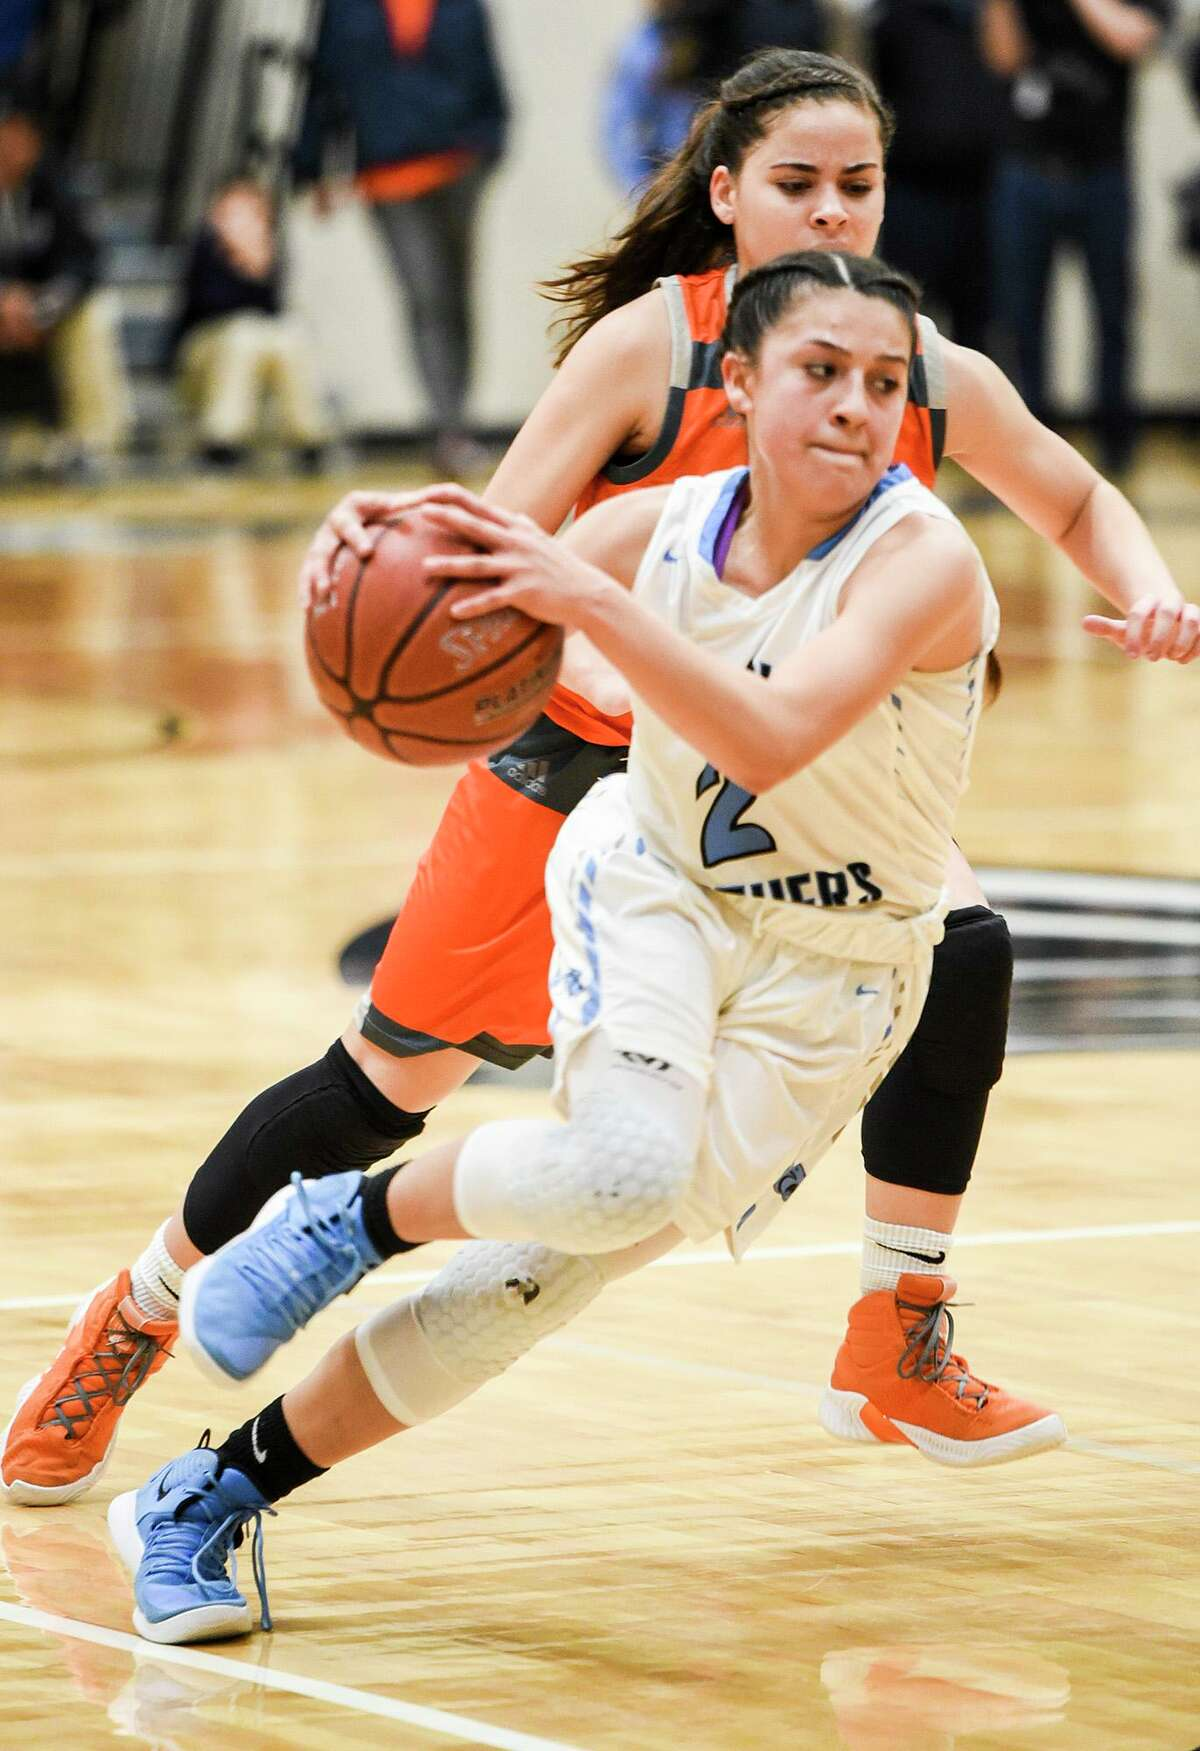 Angeline Lopez and United South host United at 7:30 p.m. Tuesday in an unbeaten battle for outright possession of first place in District 29-6A.